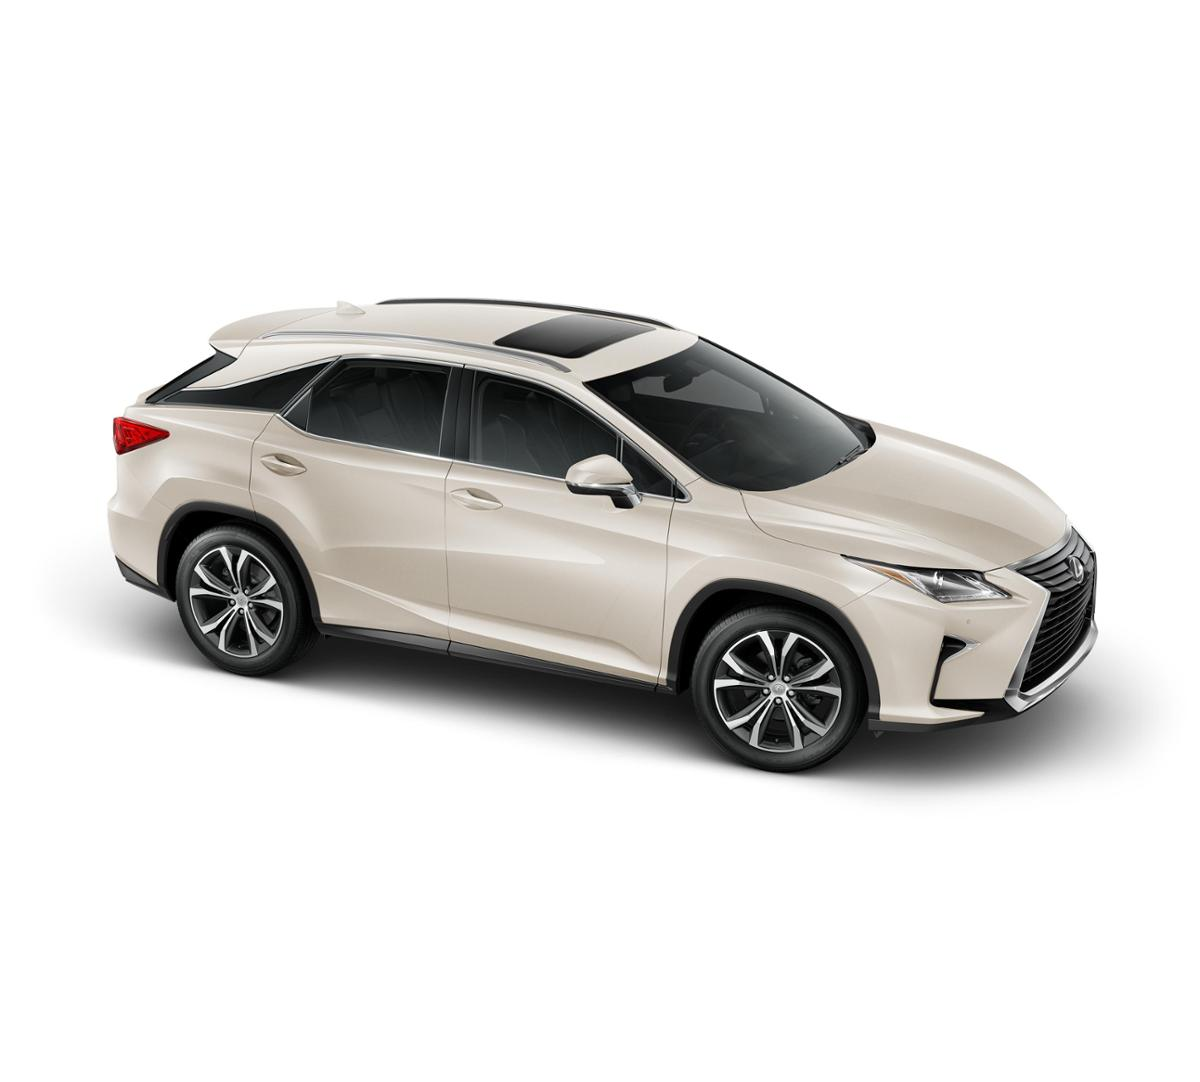 2018 lexus rx 350 for sale in west palm beach at lexus of palm beach. Black Bedroom Furniture Sets. Home Design Ideas